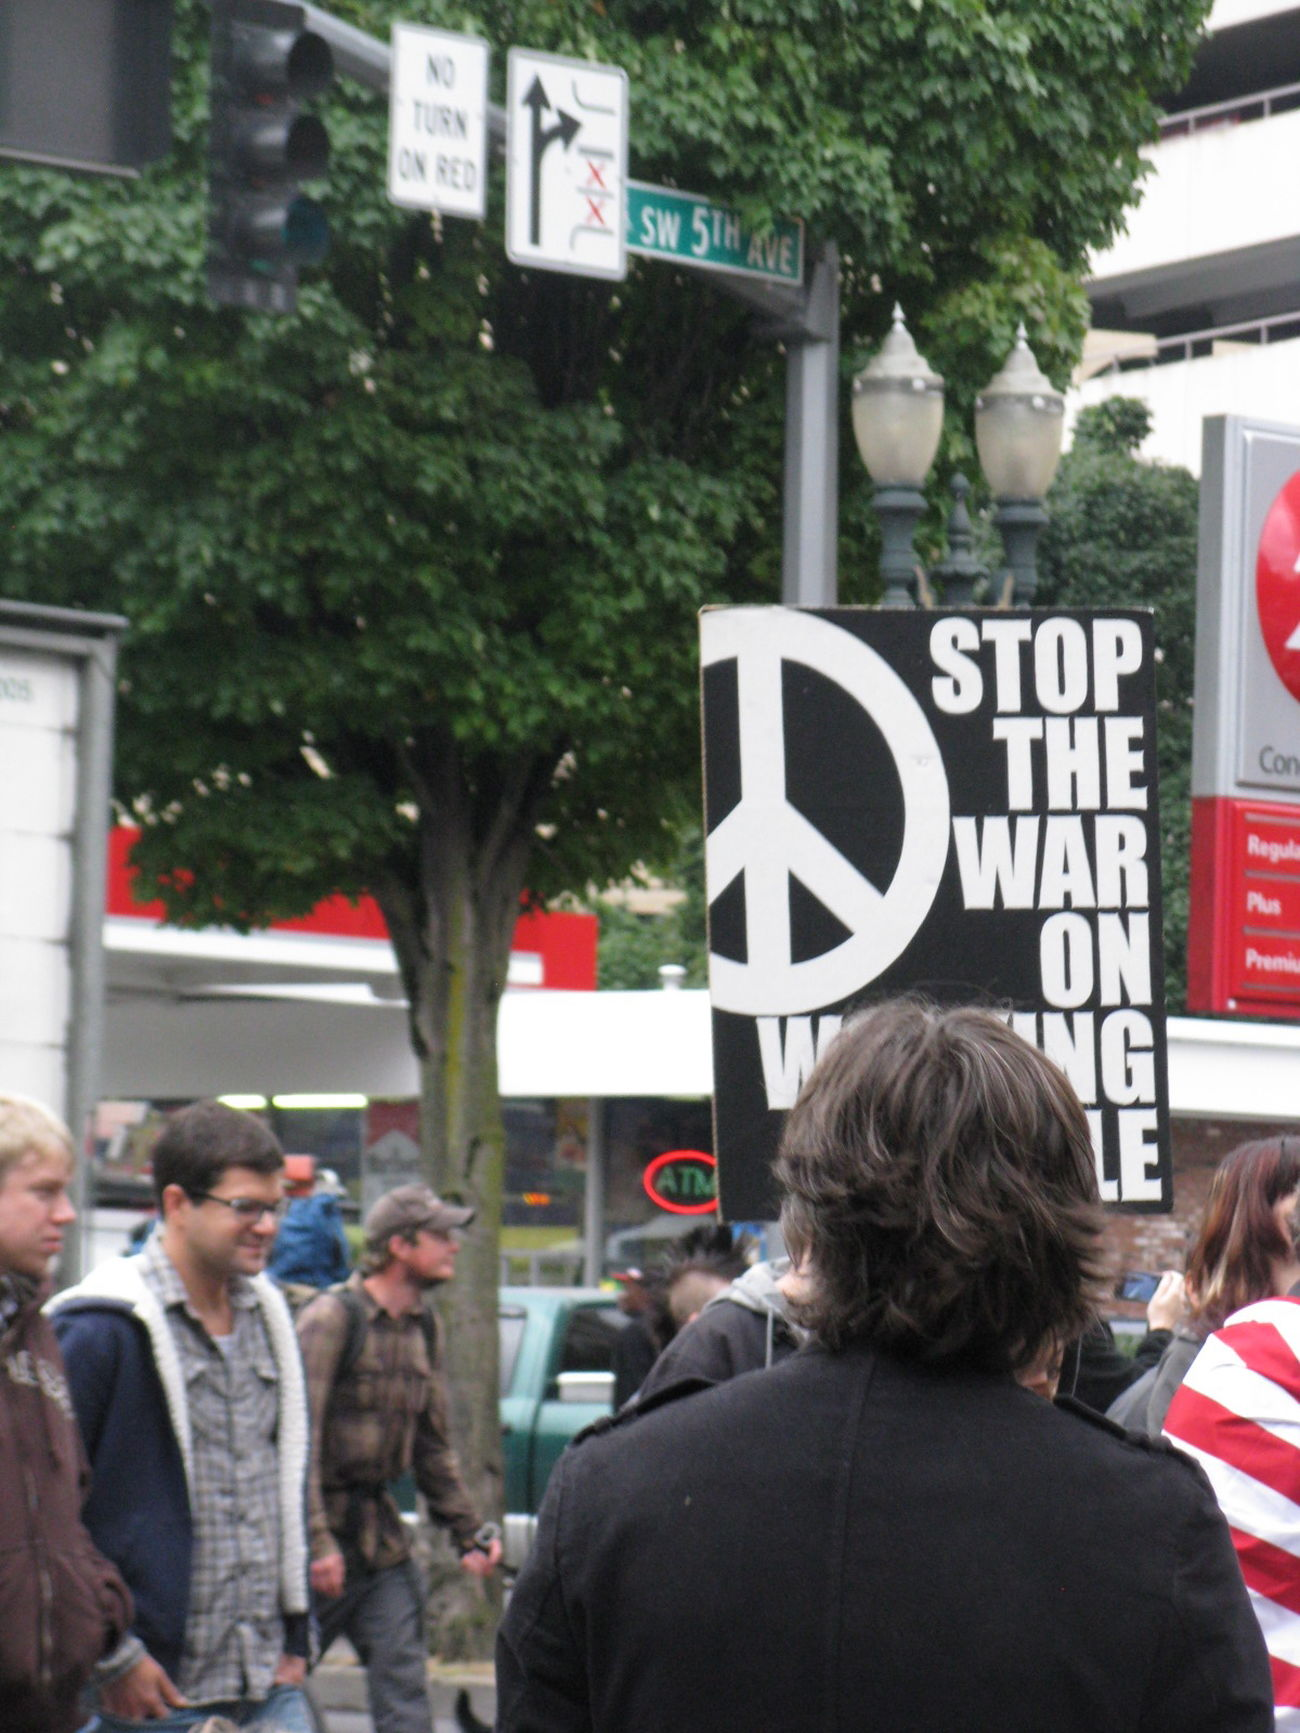 Occupy Portland, September 6, 2011 #OccupyPortland #portland Day Occupy Portland Portrait Protest Protesters Up Close Street Photography Resist